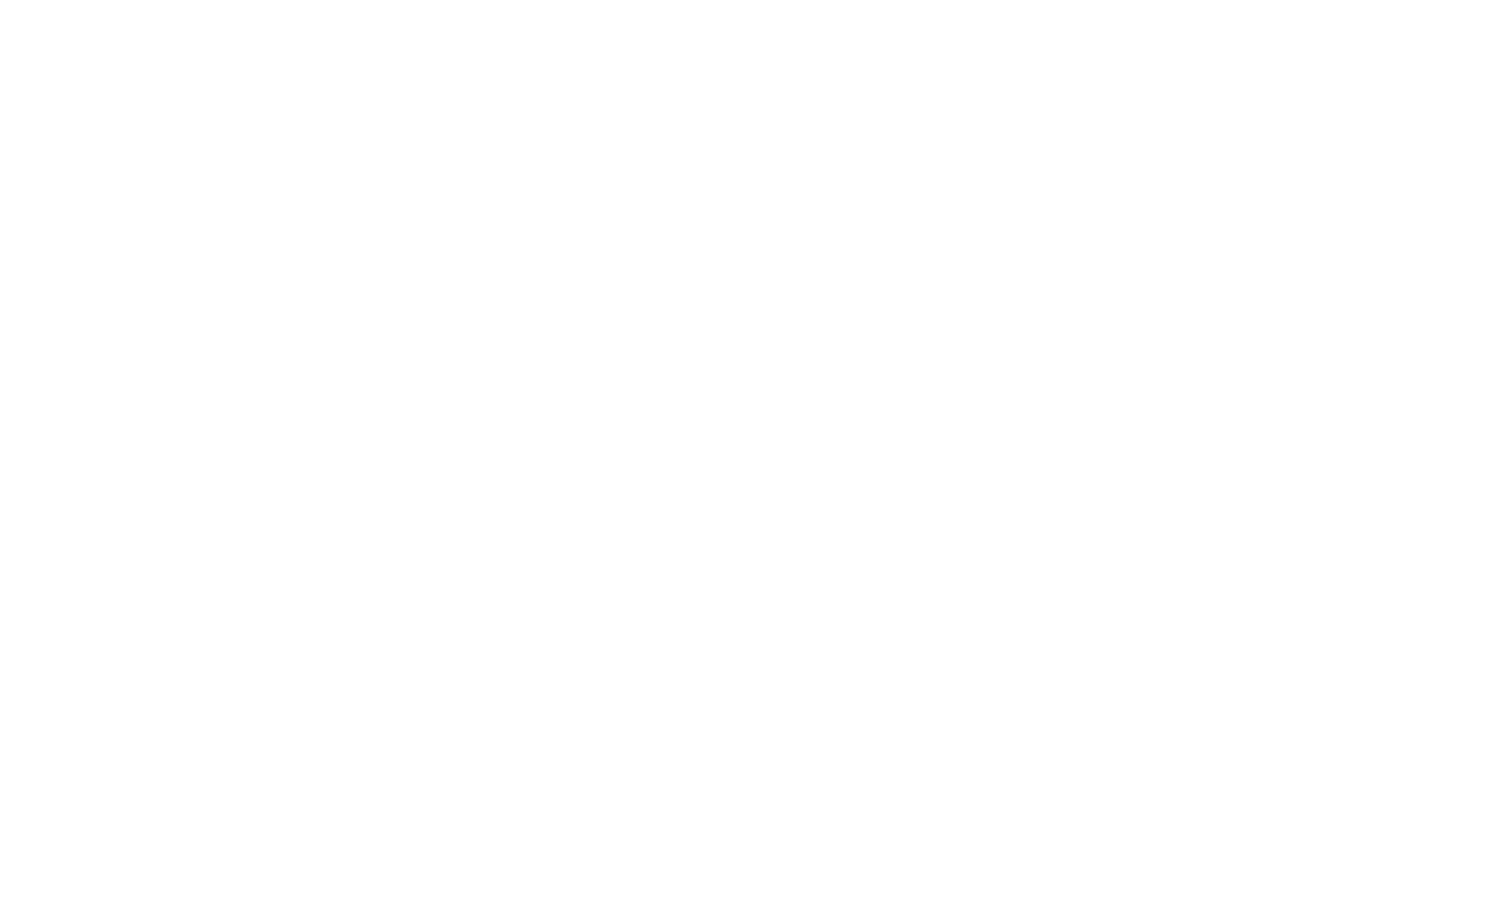 Otherland logo in white